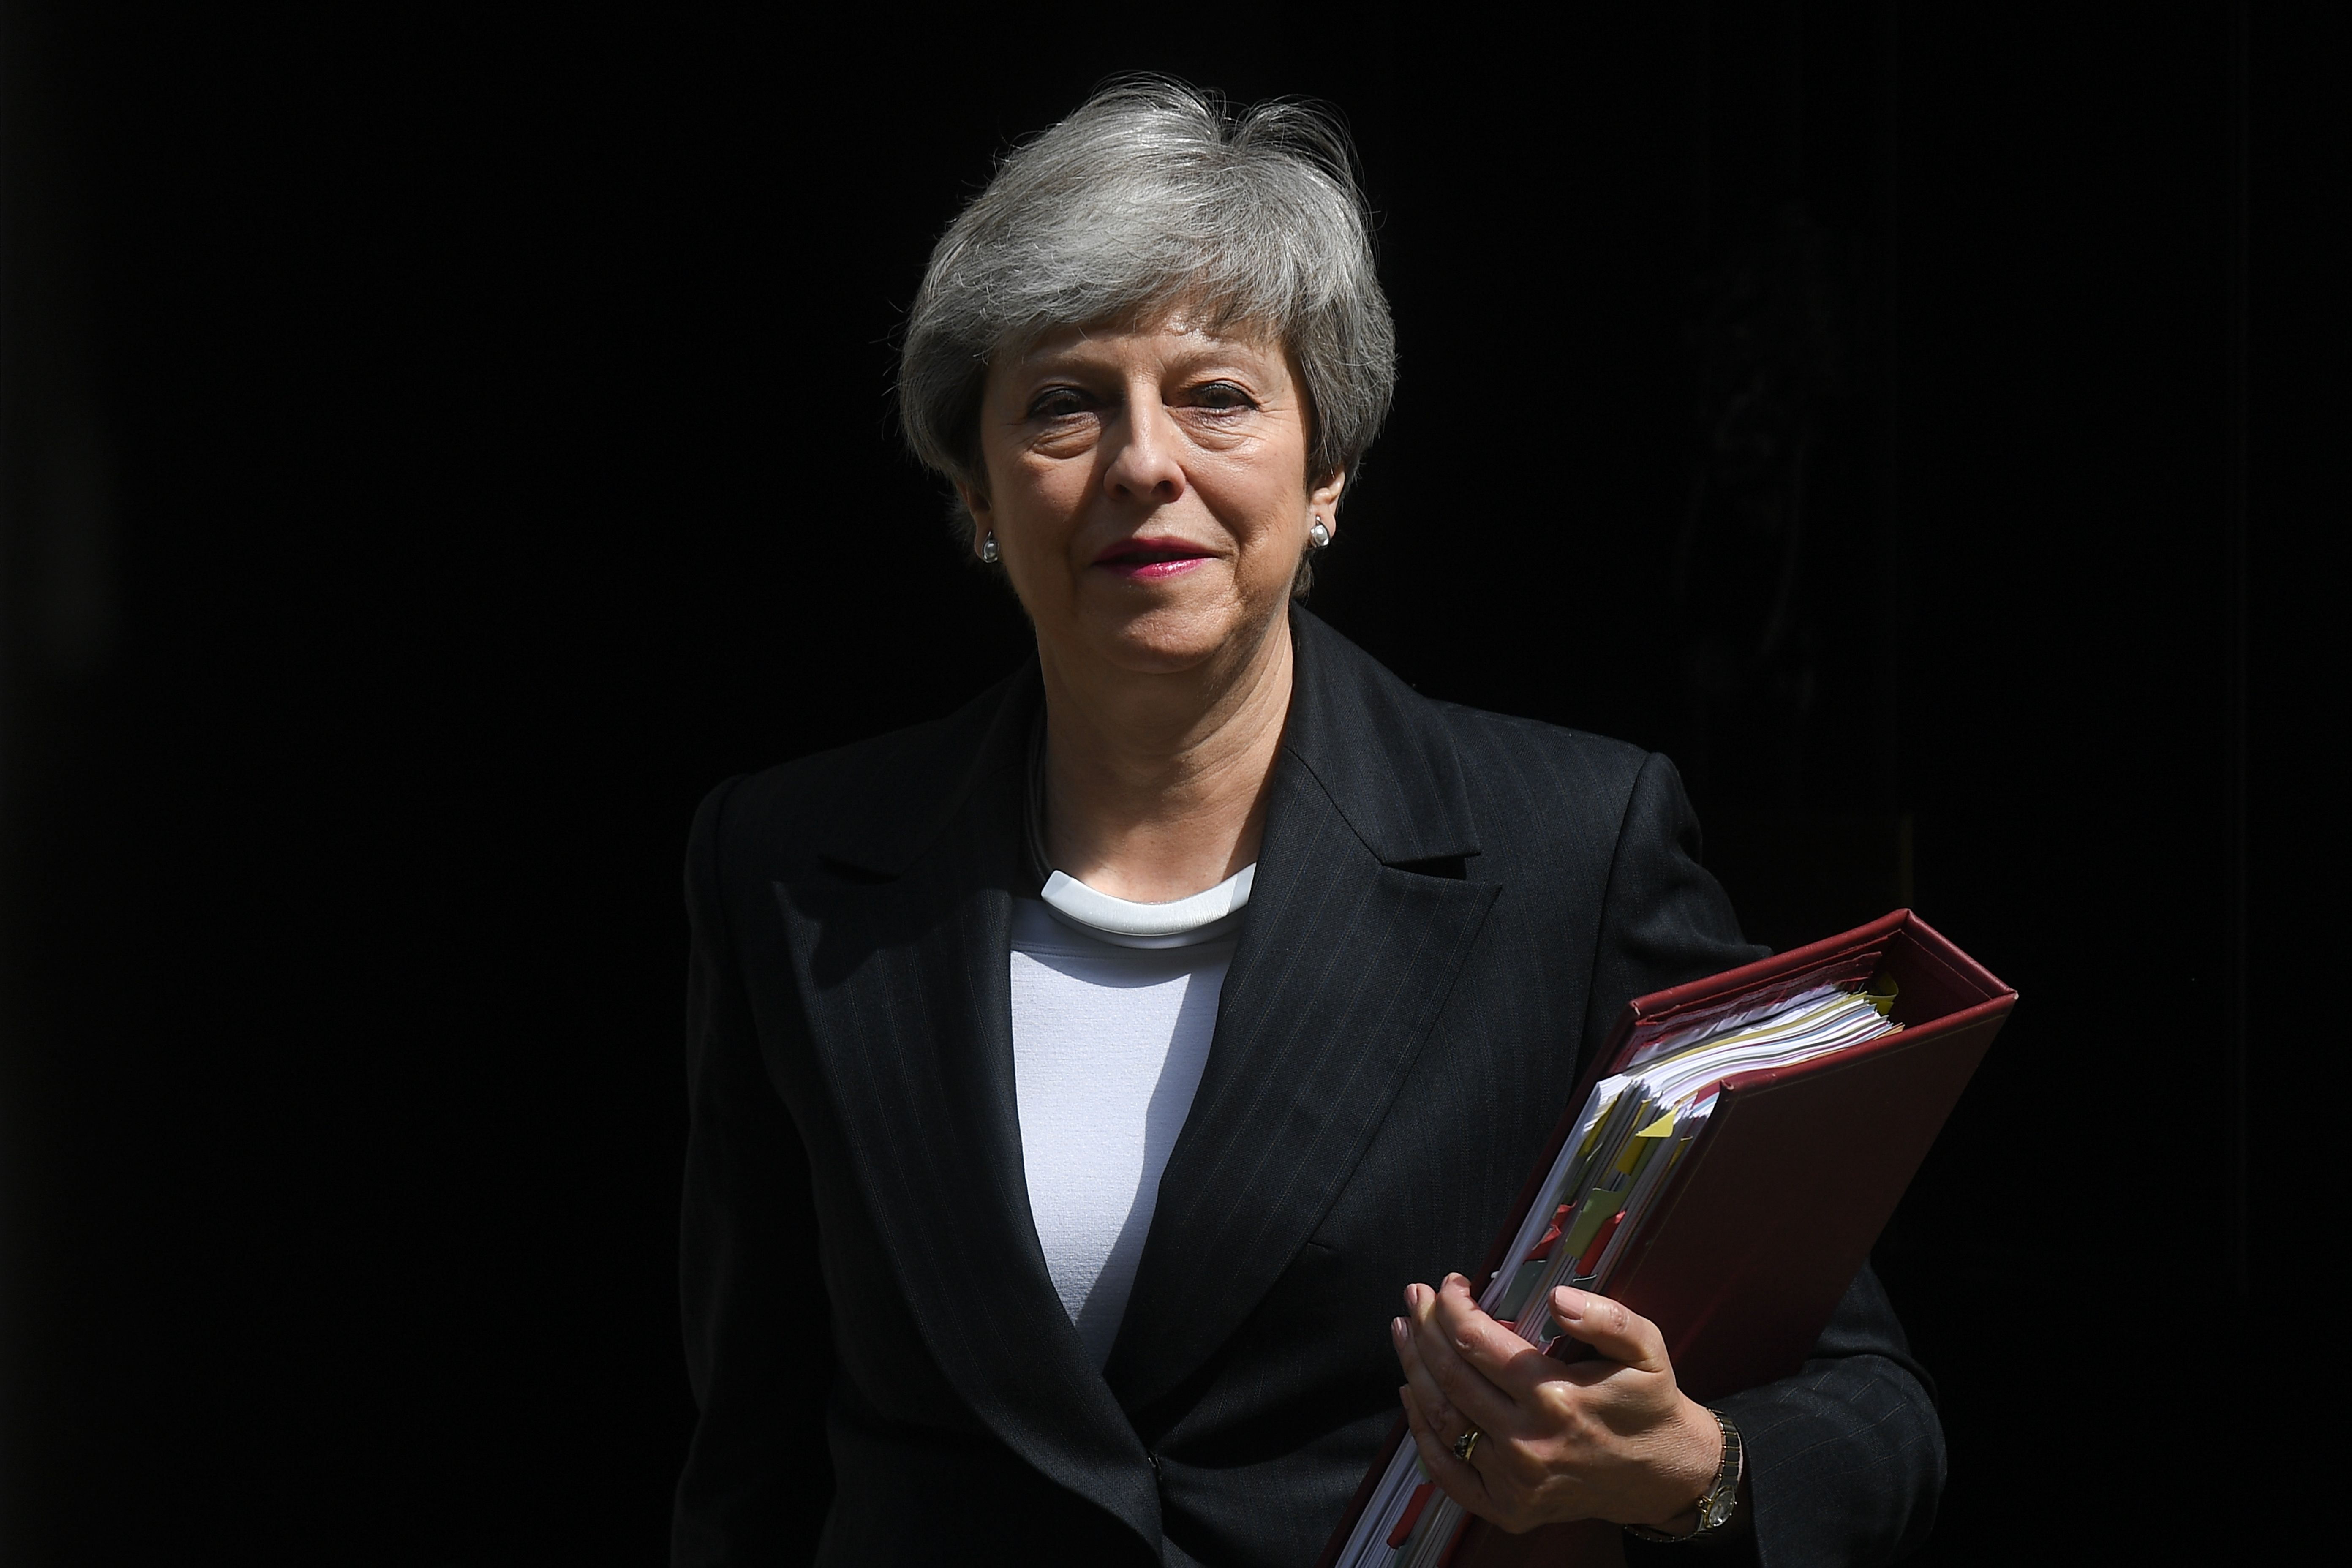 Theresa May leaves Downing Street for Prime Minister's Questions on Wednesday.